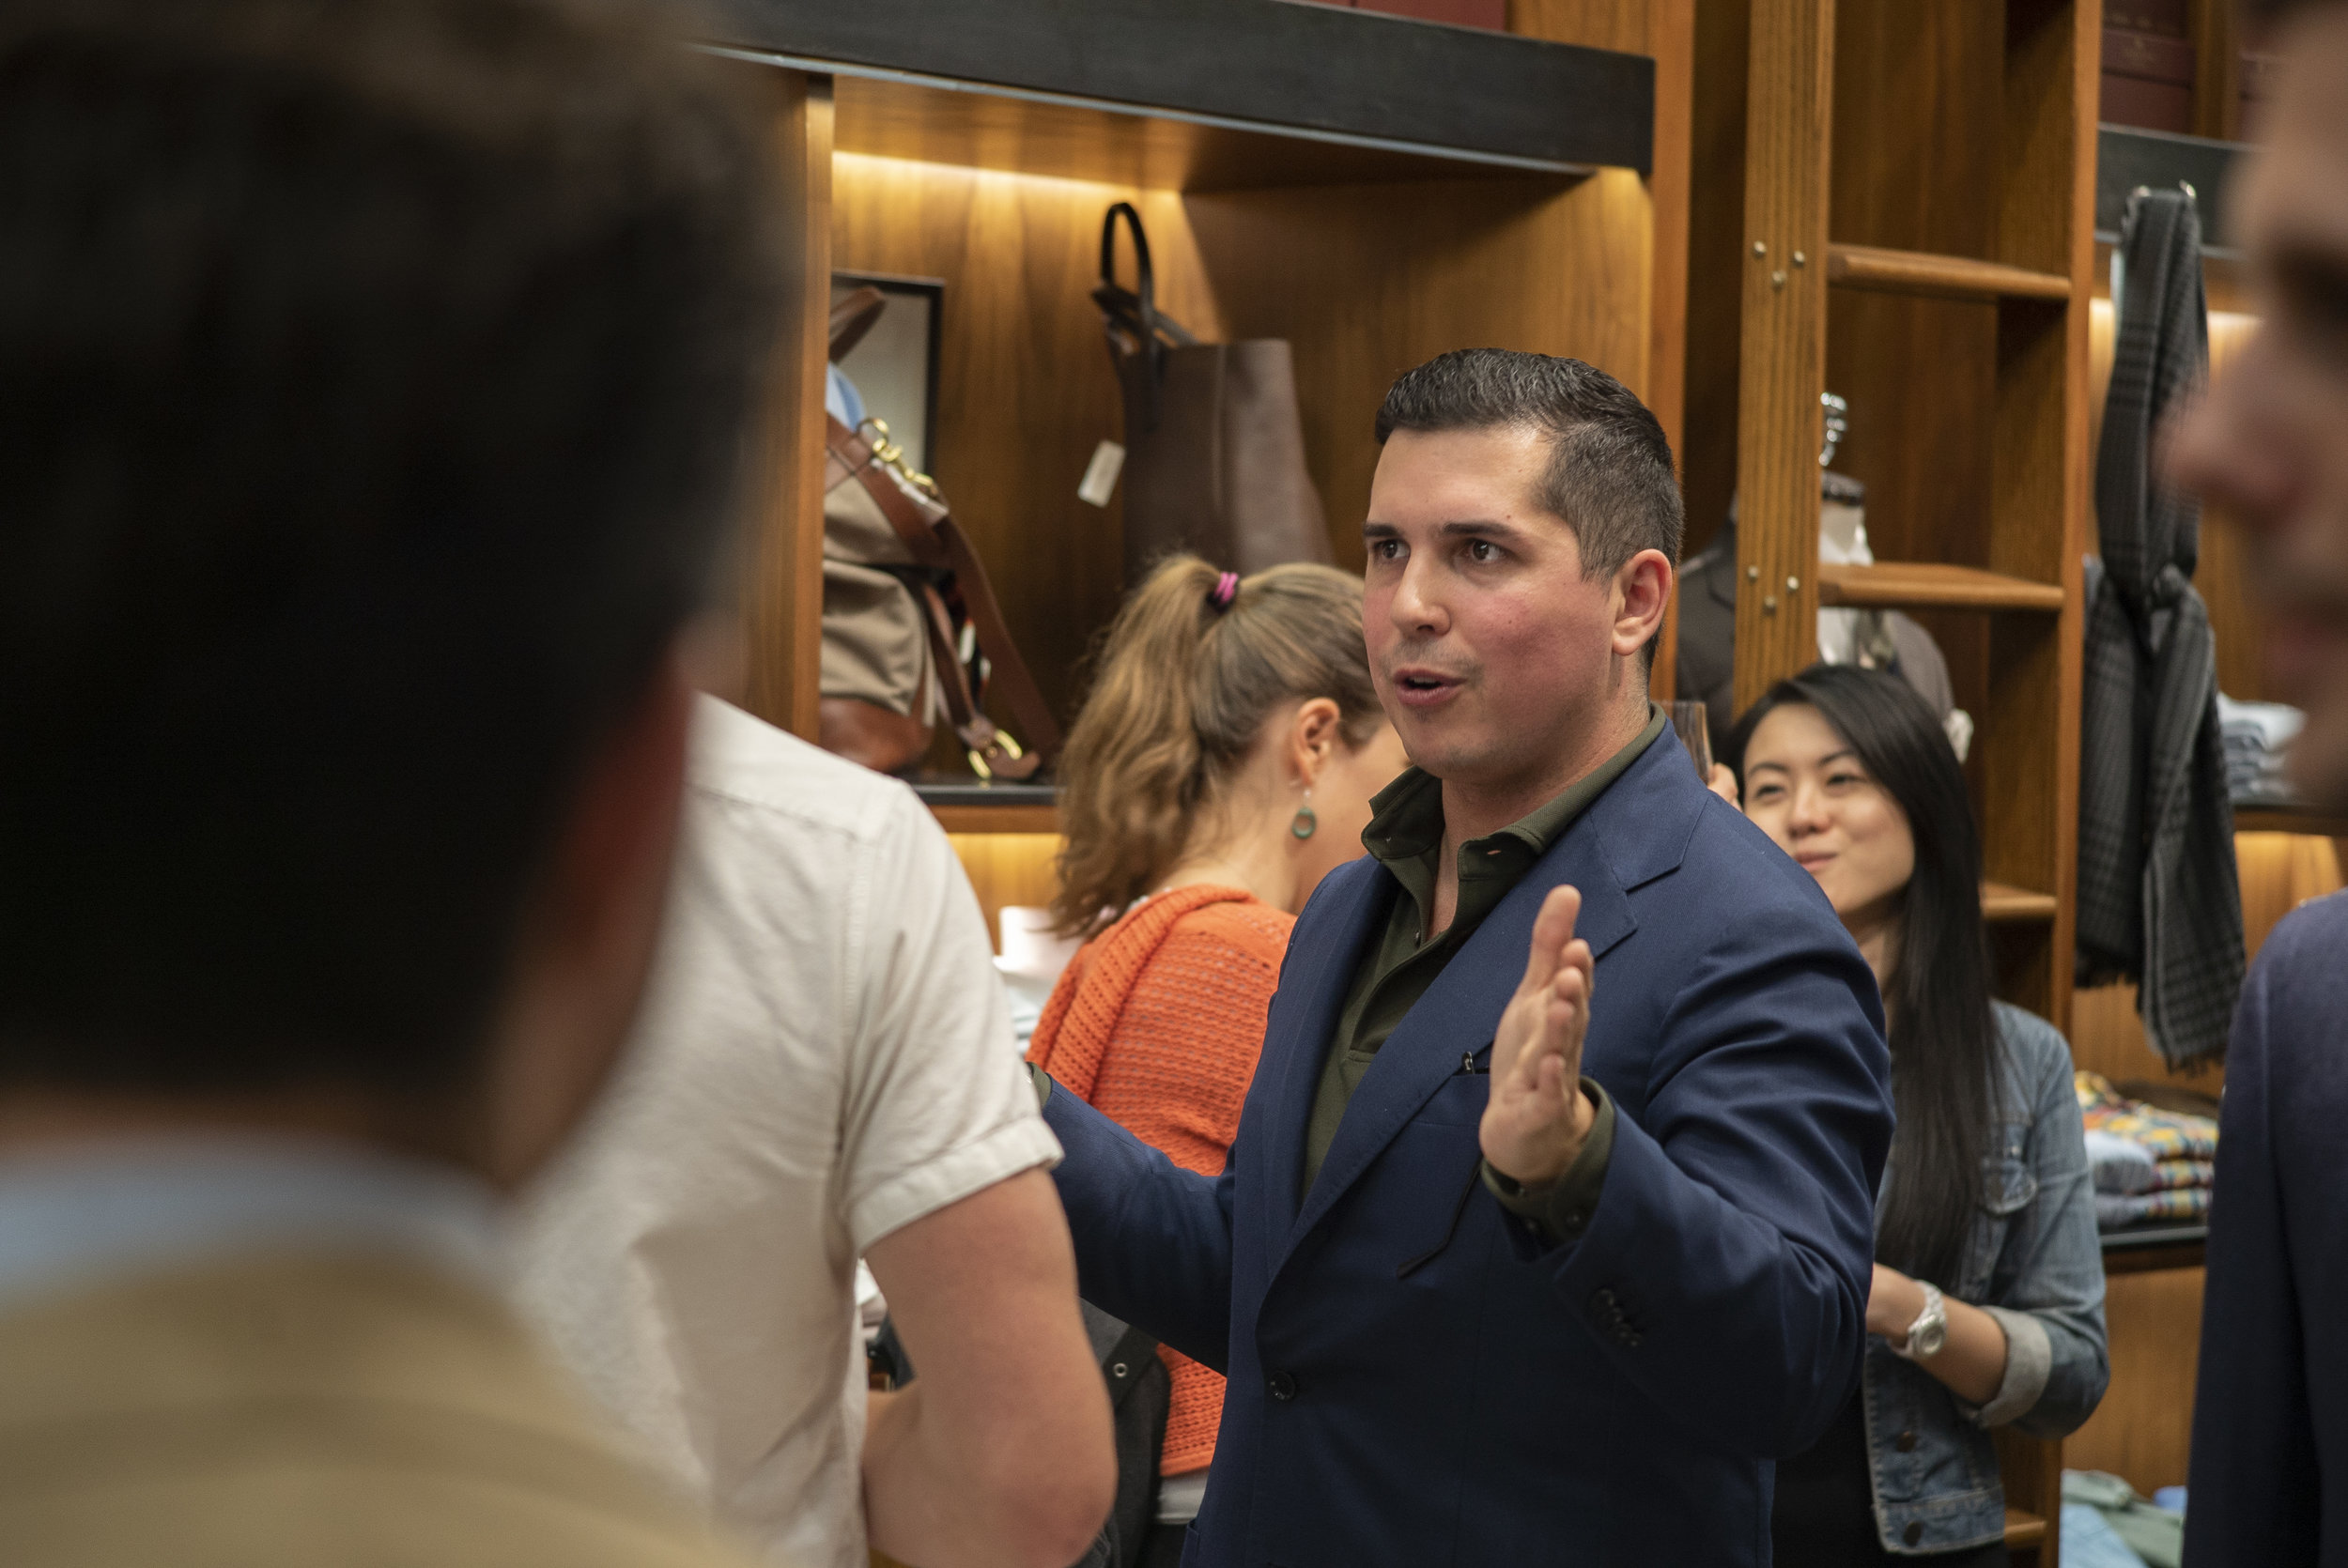 The Macallan tasting at The Armoury Tribeca - Read More